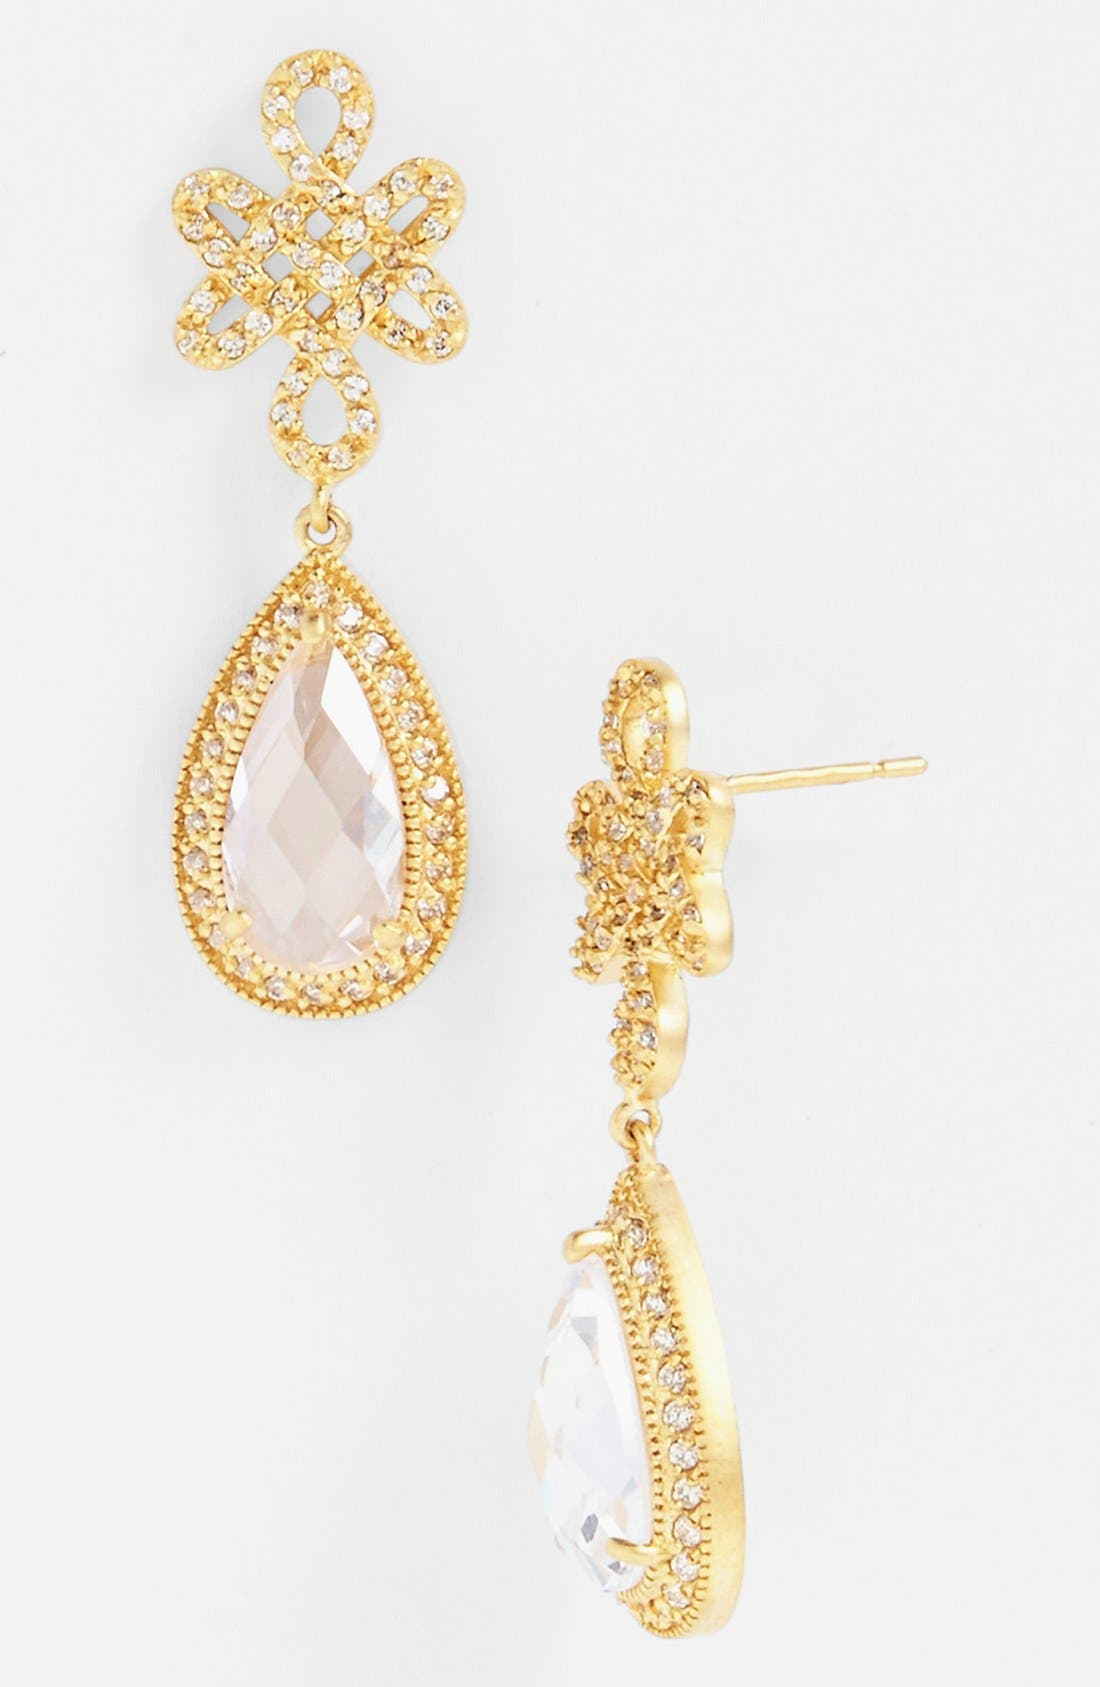 Alternate Image 1 Selected - FREIDA ROTHMAN 'Gramercy' Love Knot Teardrop Earrings